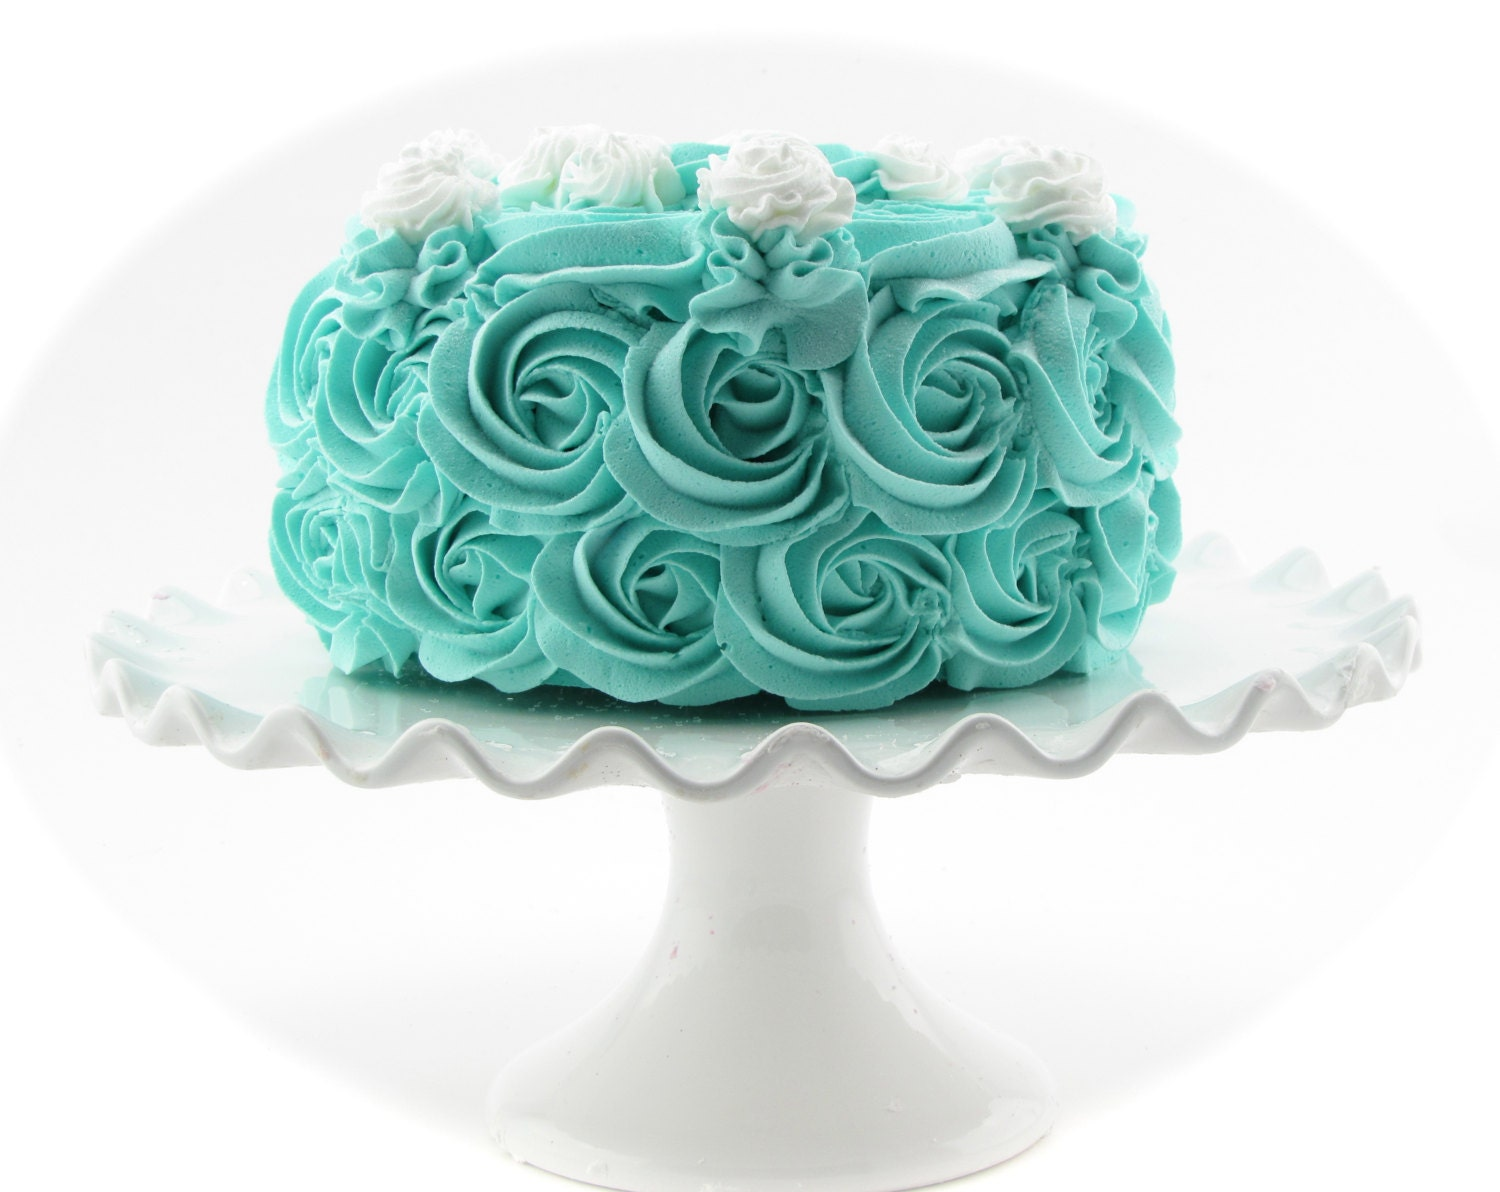 Rosette Fake Cake Turquoise Frosting Approx 675w X